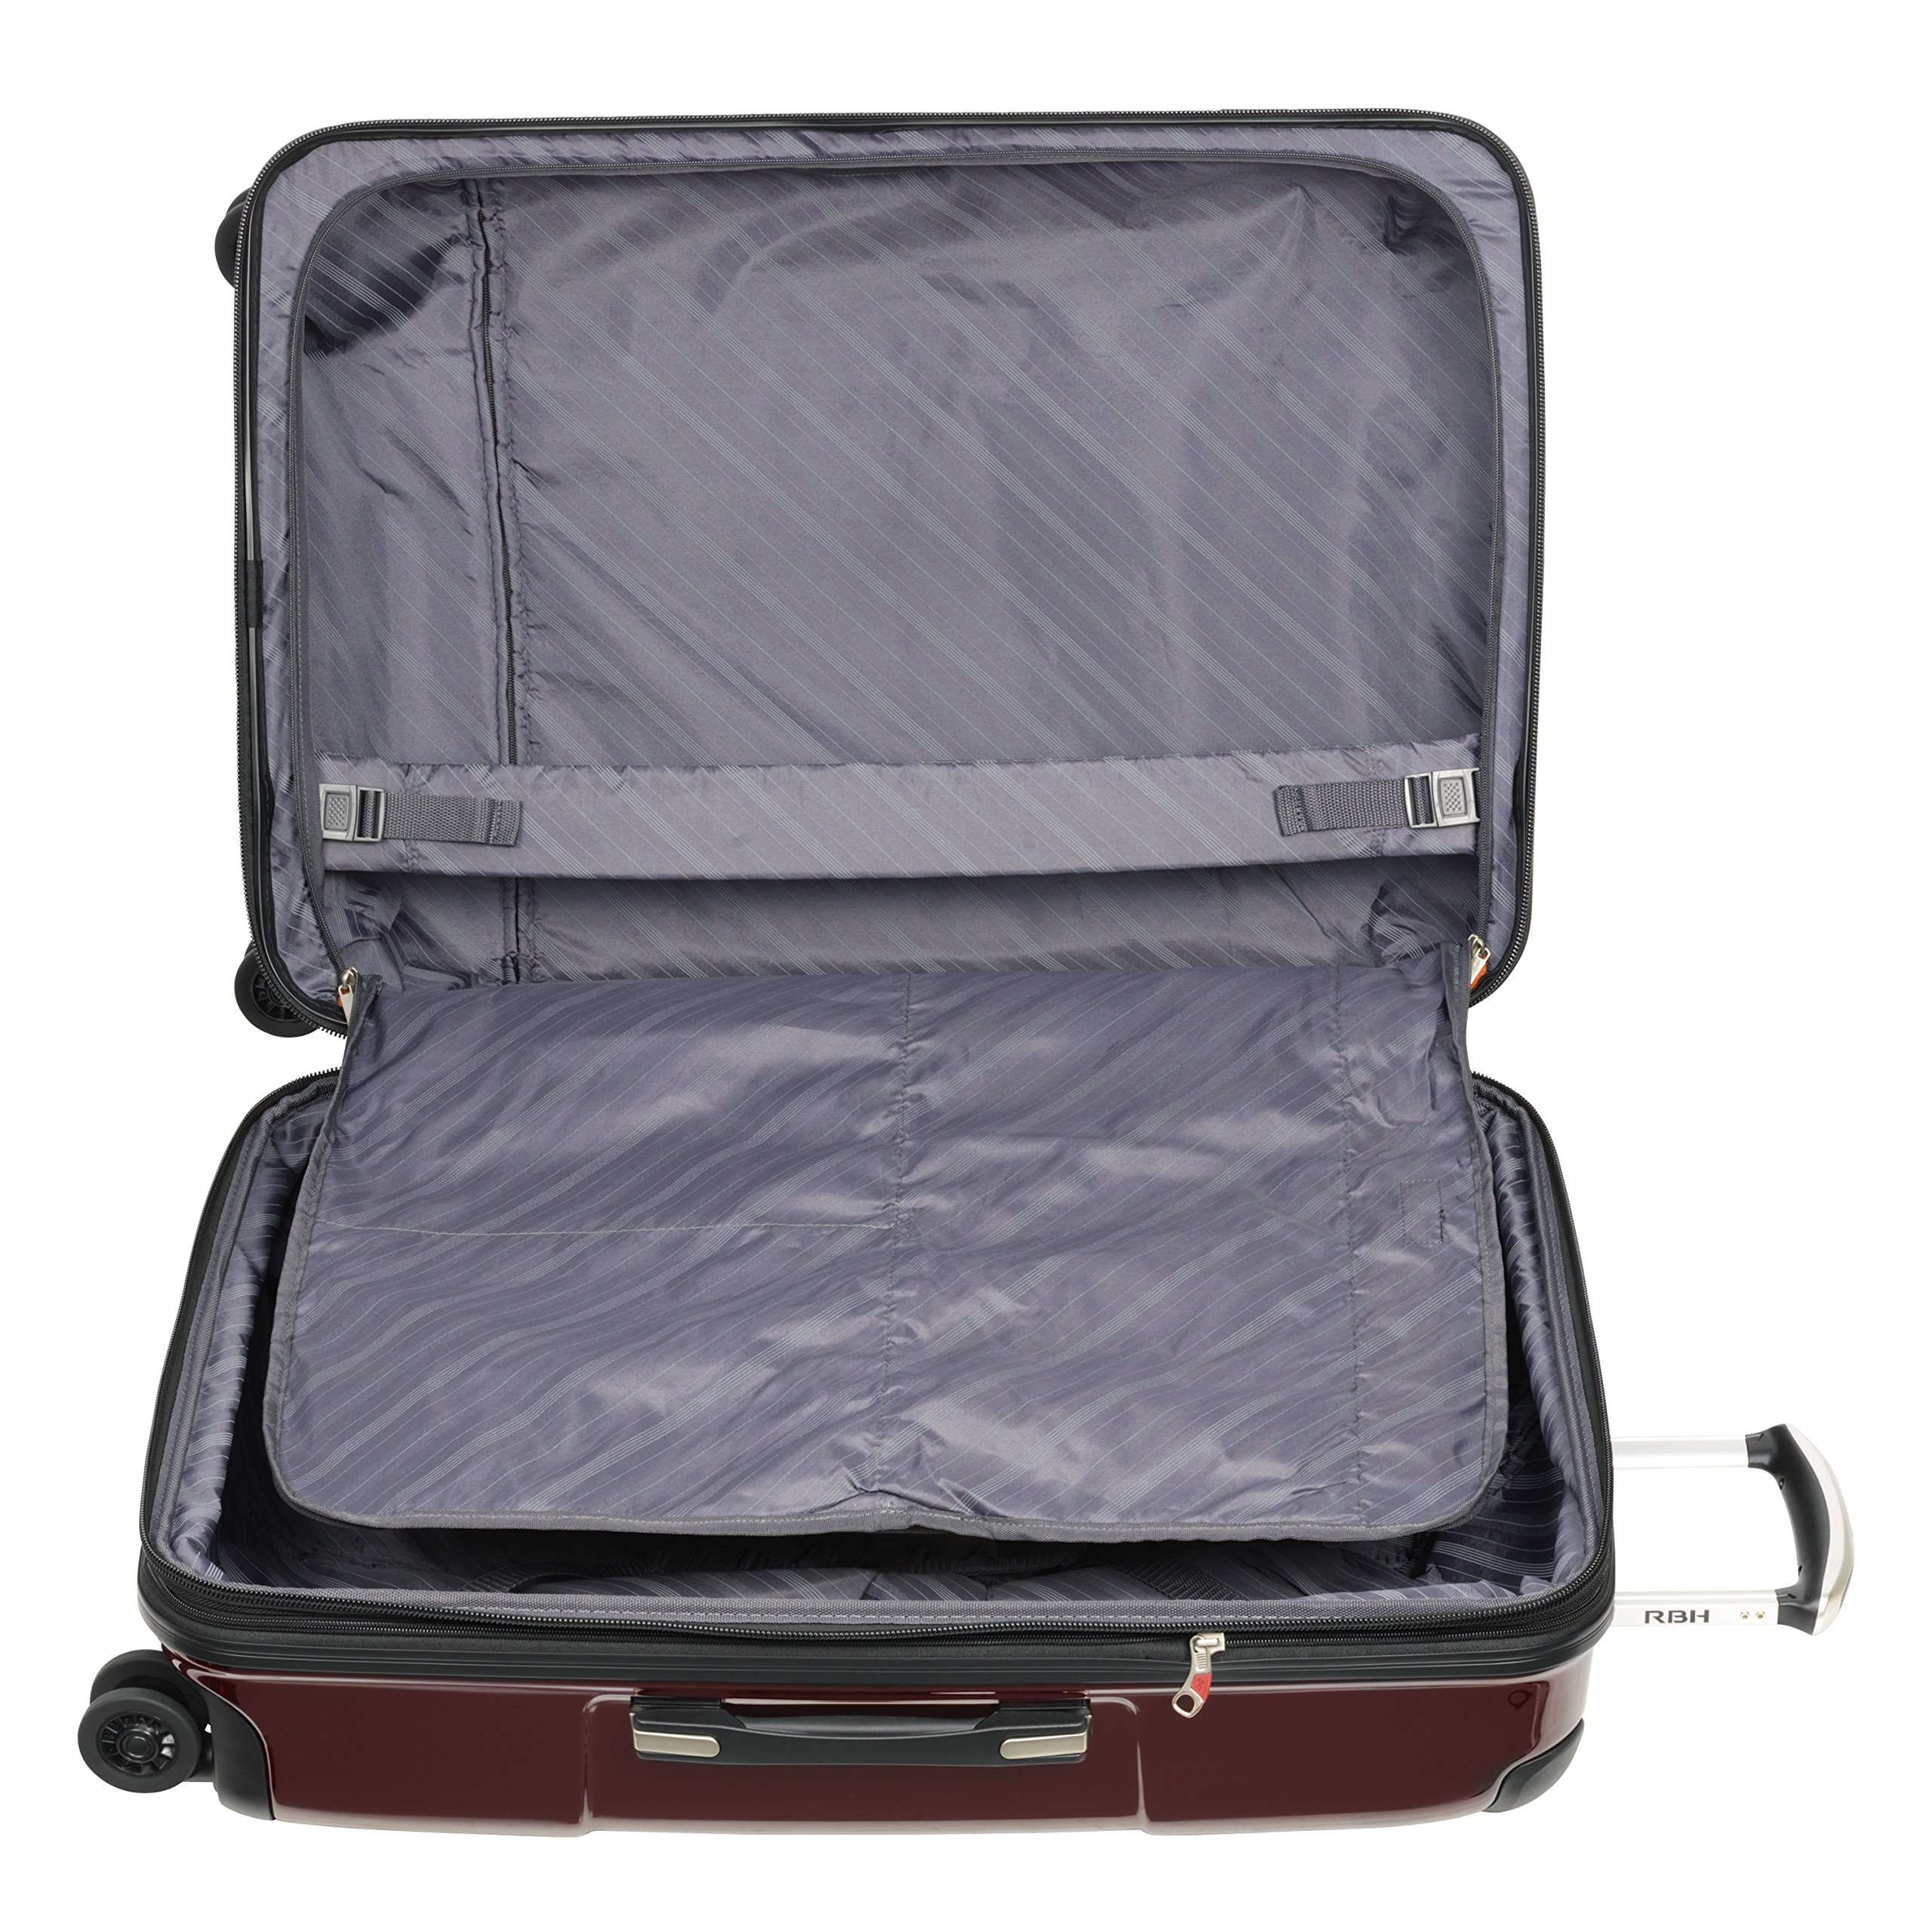 Ricardo Beverly Hills Luggage Rodeo Drive 29-Inch 4-Wheel Expandable Upright, Black Cherry, One Size by Ricardo Beverly Hills (Image #4)